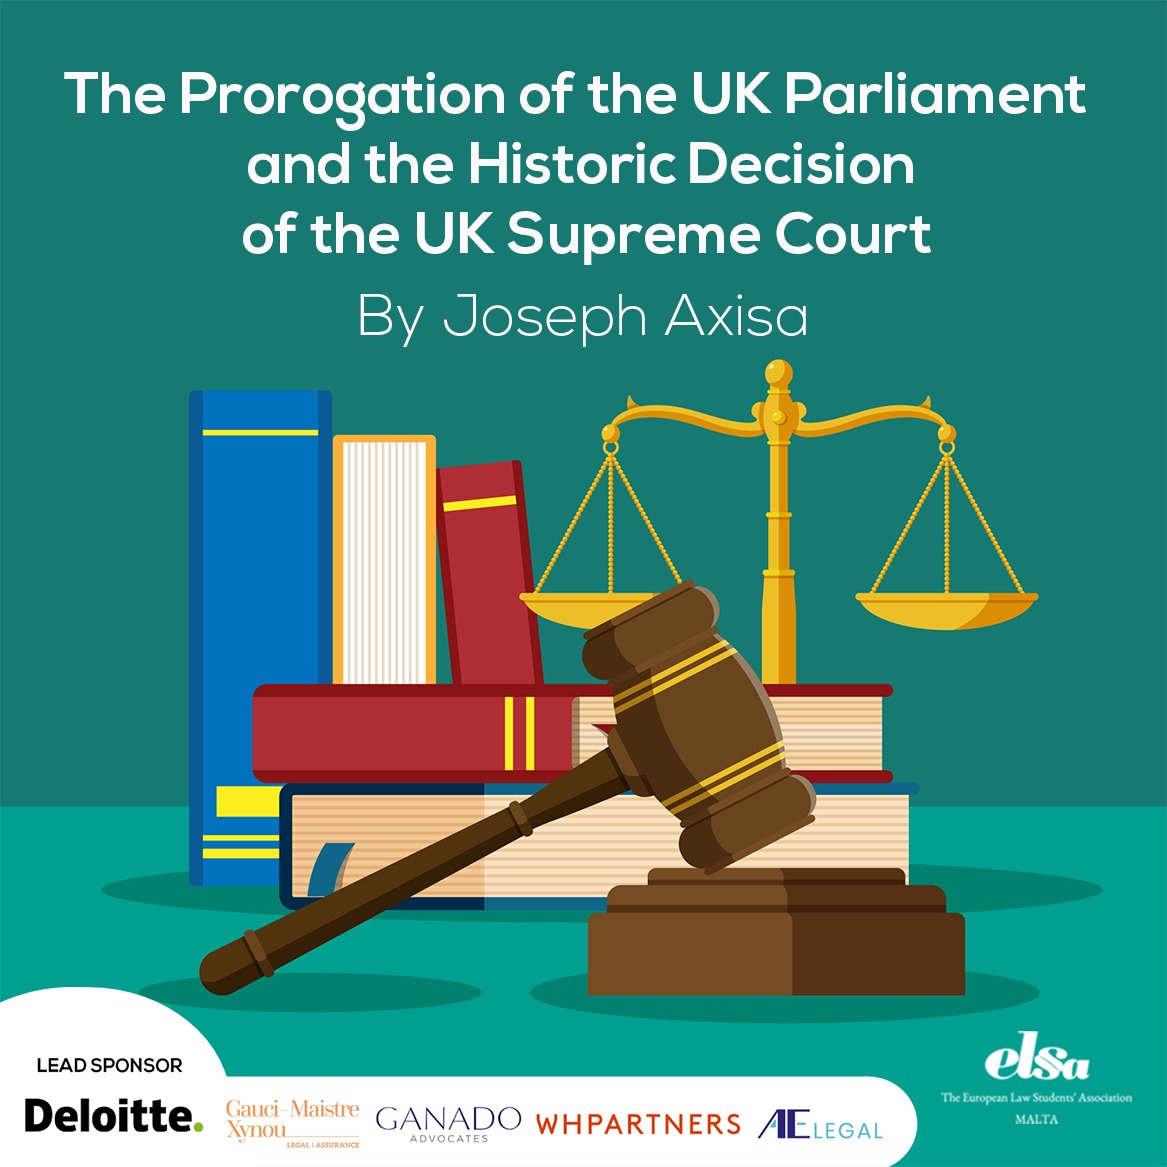 The Prorogation of the UK Parliament and the historic decision of the UK Supreme Court